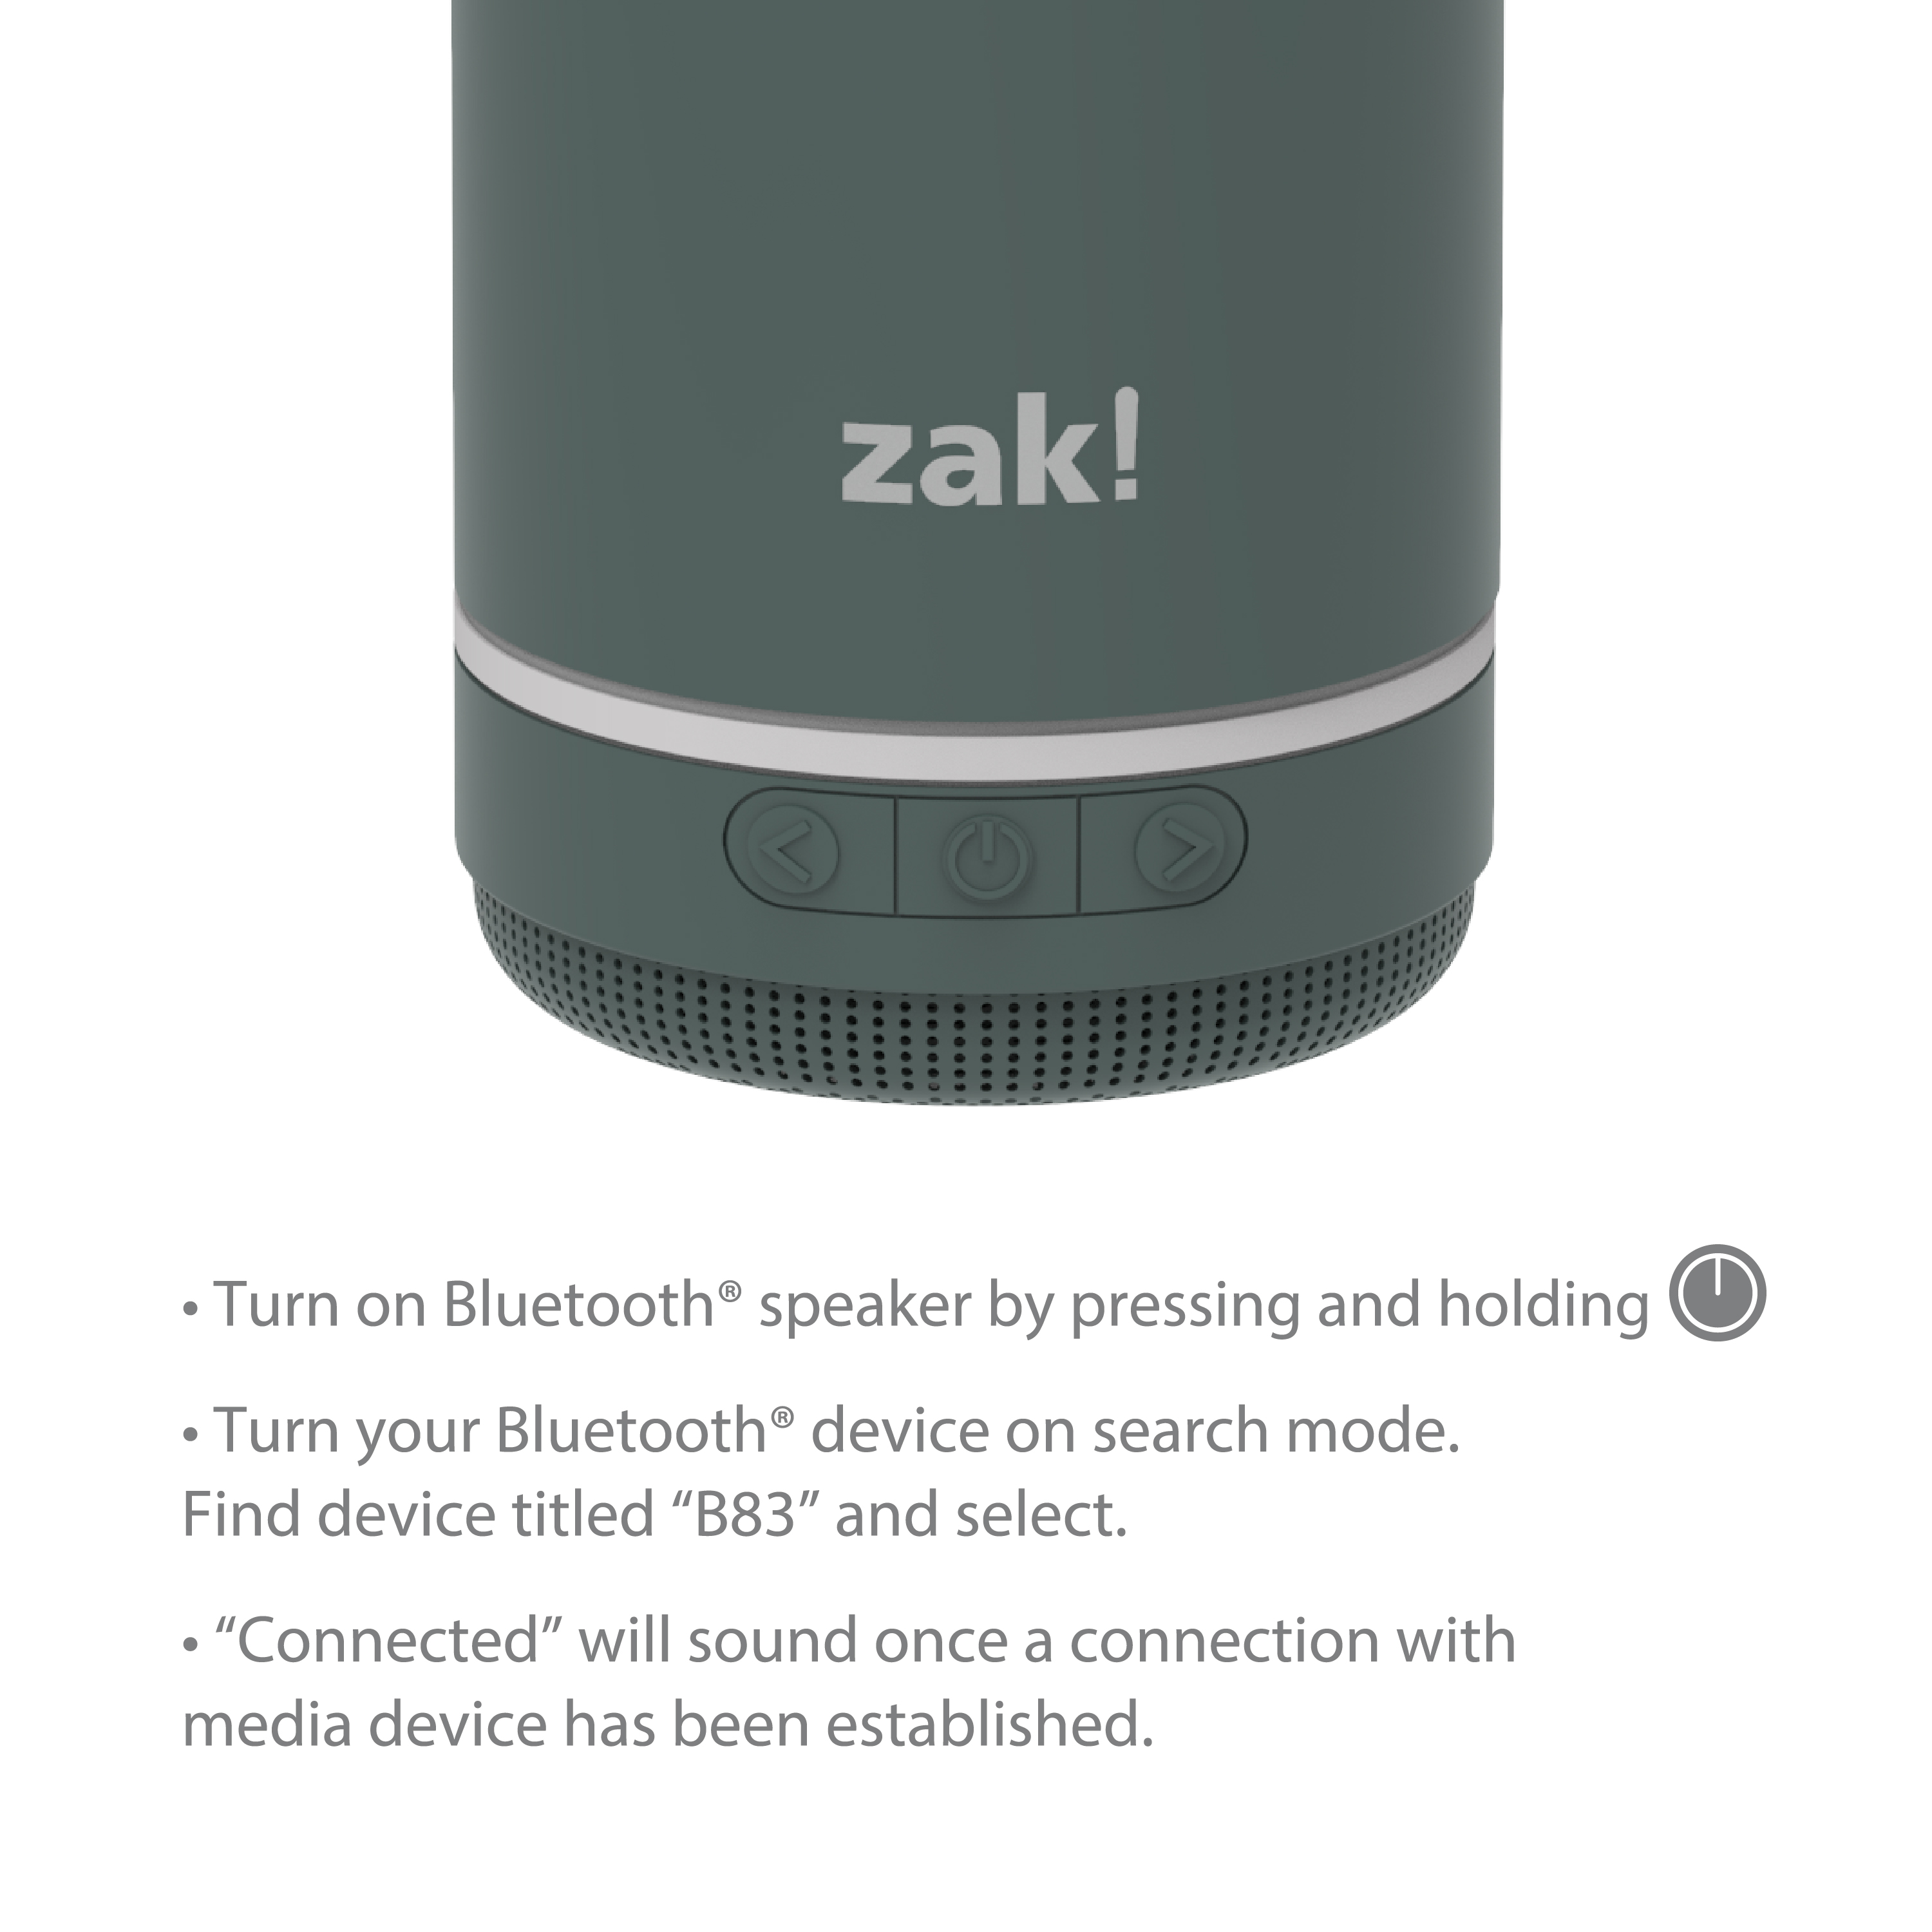 Zak Play 17.5 ounce Stainless Steel Tumbler with Bluetooth Speaker, Gray slideshow image 9